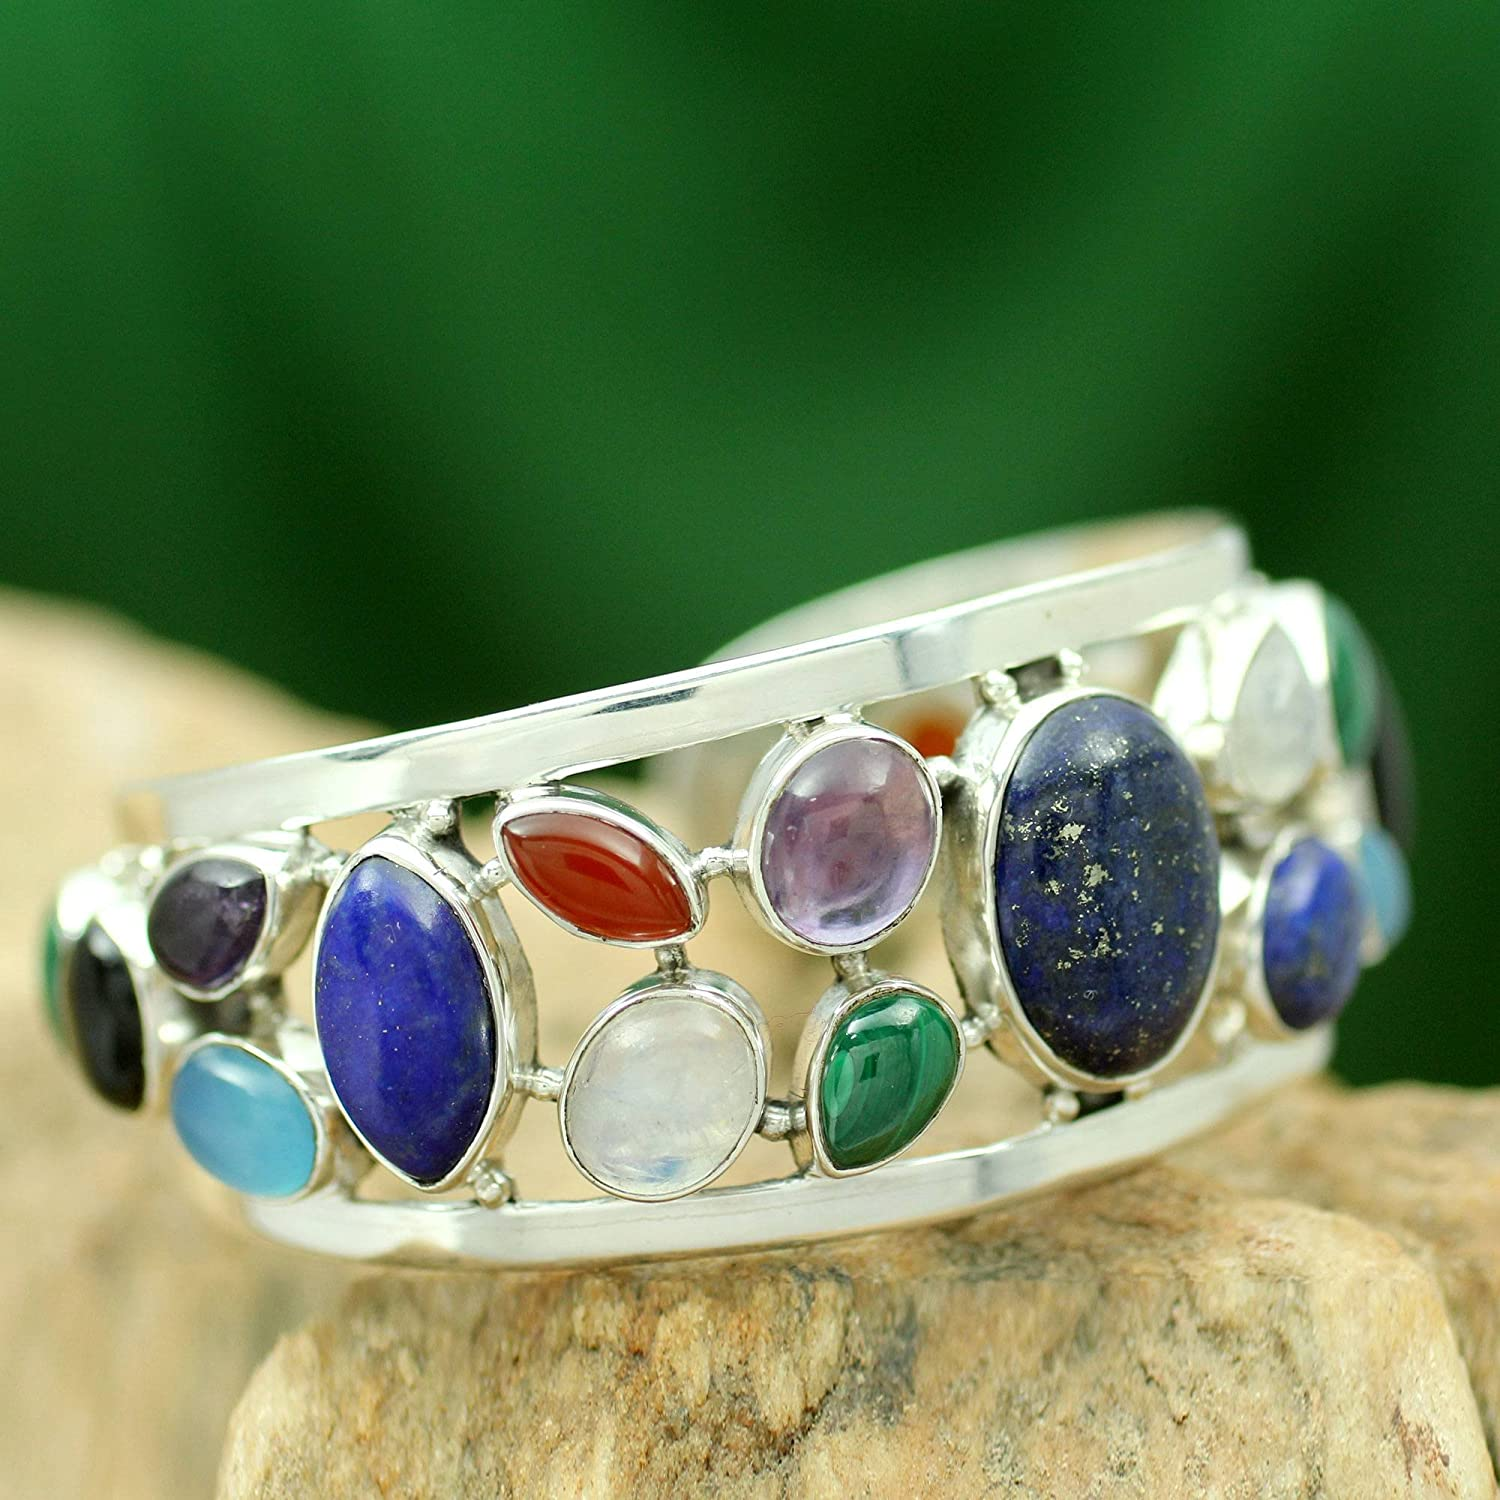 NOVICA Multi-Gem Cultured Freshwater Pearl .925 Sterling Silver Cuff Bracelet Colors of Life